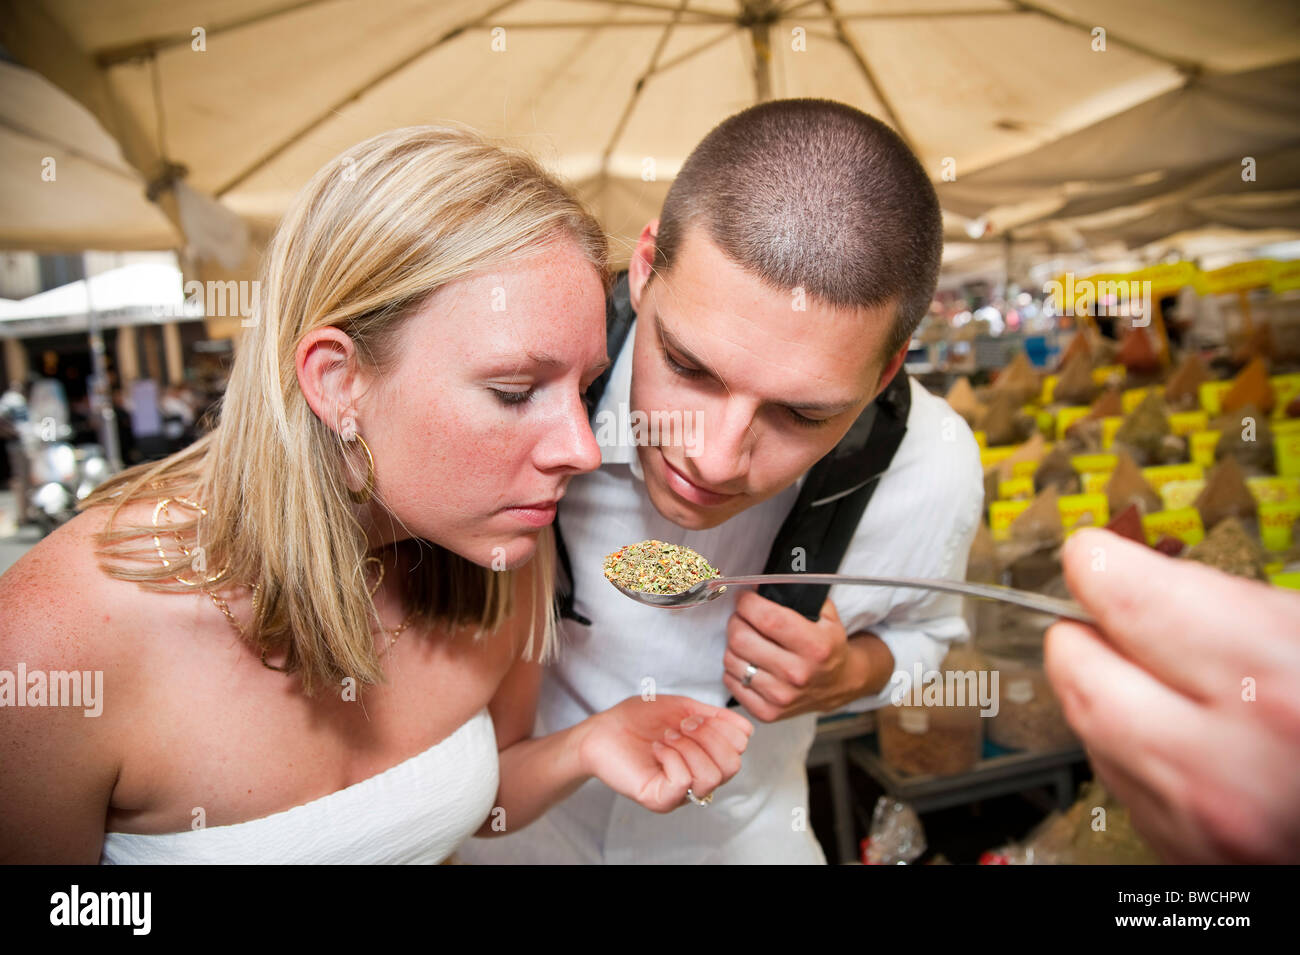 Couple smelling Italian herbs and spices - Stock Image